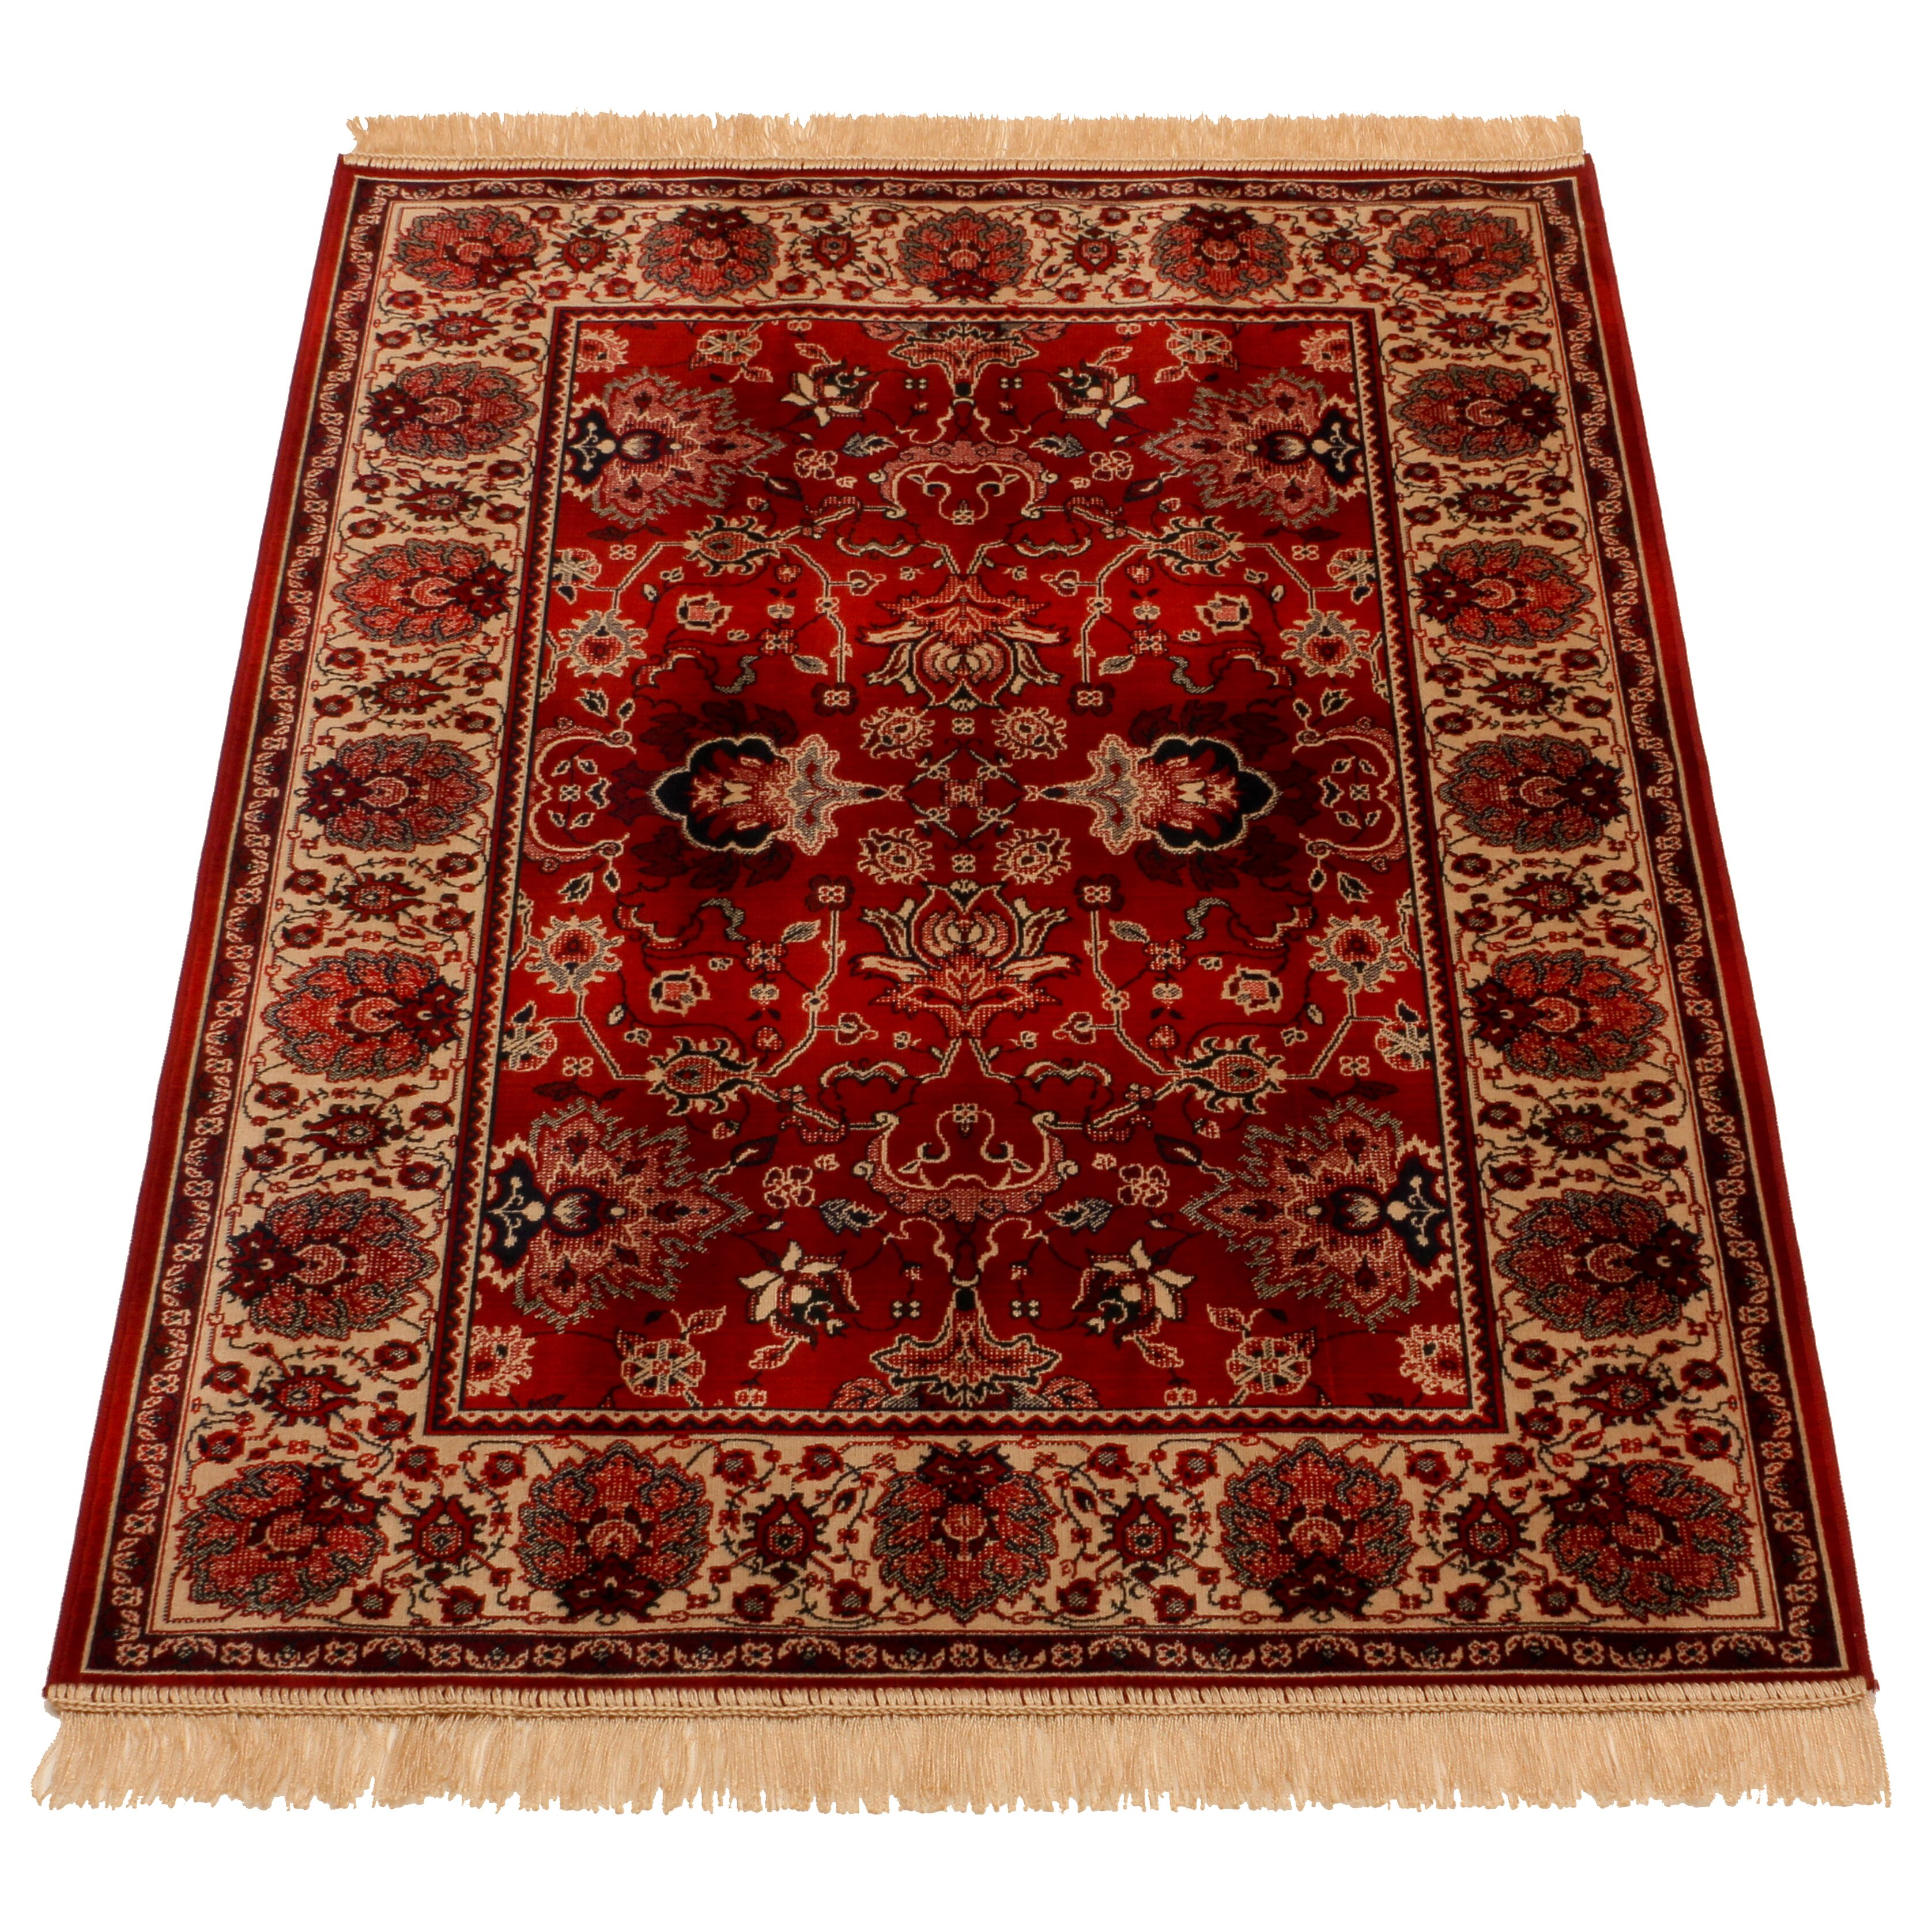 Barefoot Artsilk Rugs Indian Agra Hand-Woven Red Area Rug